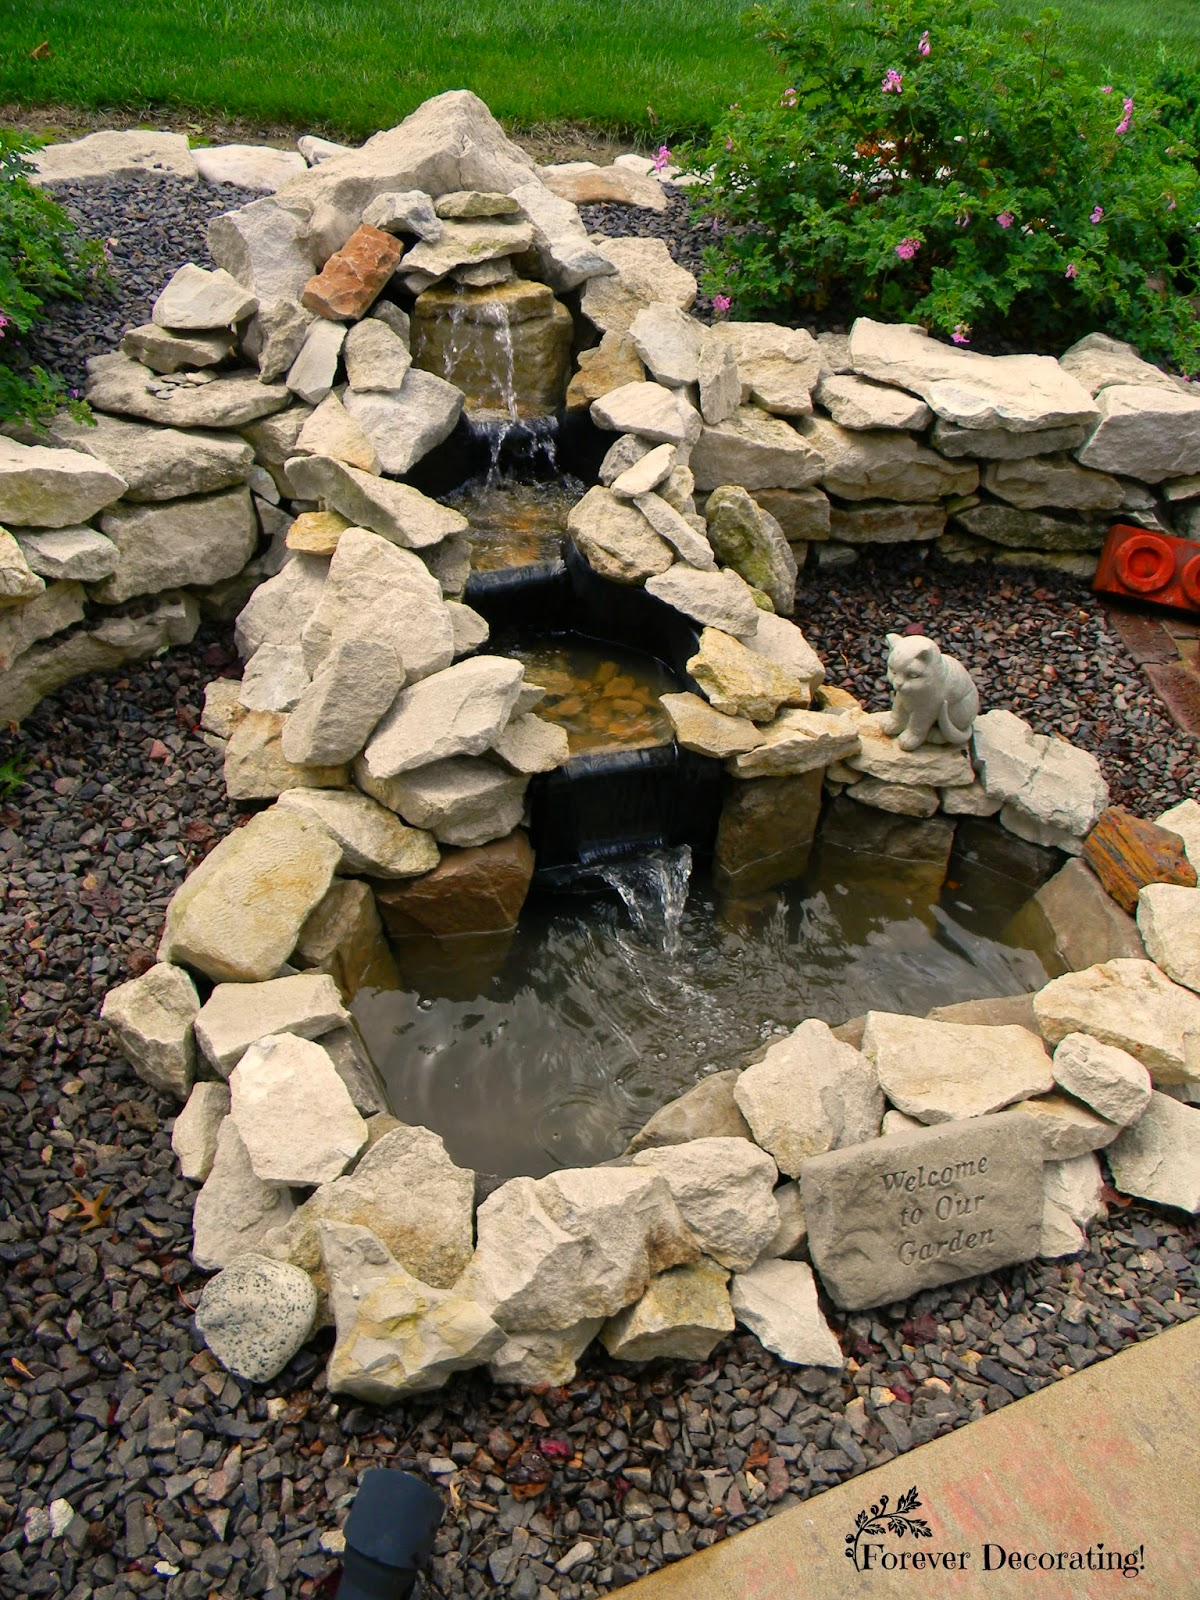 Forever Decorating!: From Fountain to Pond